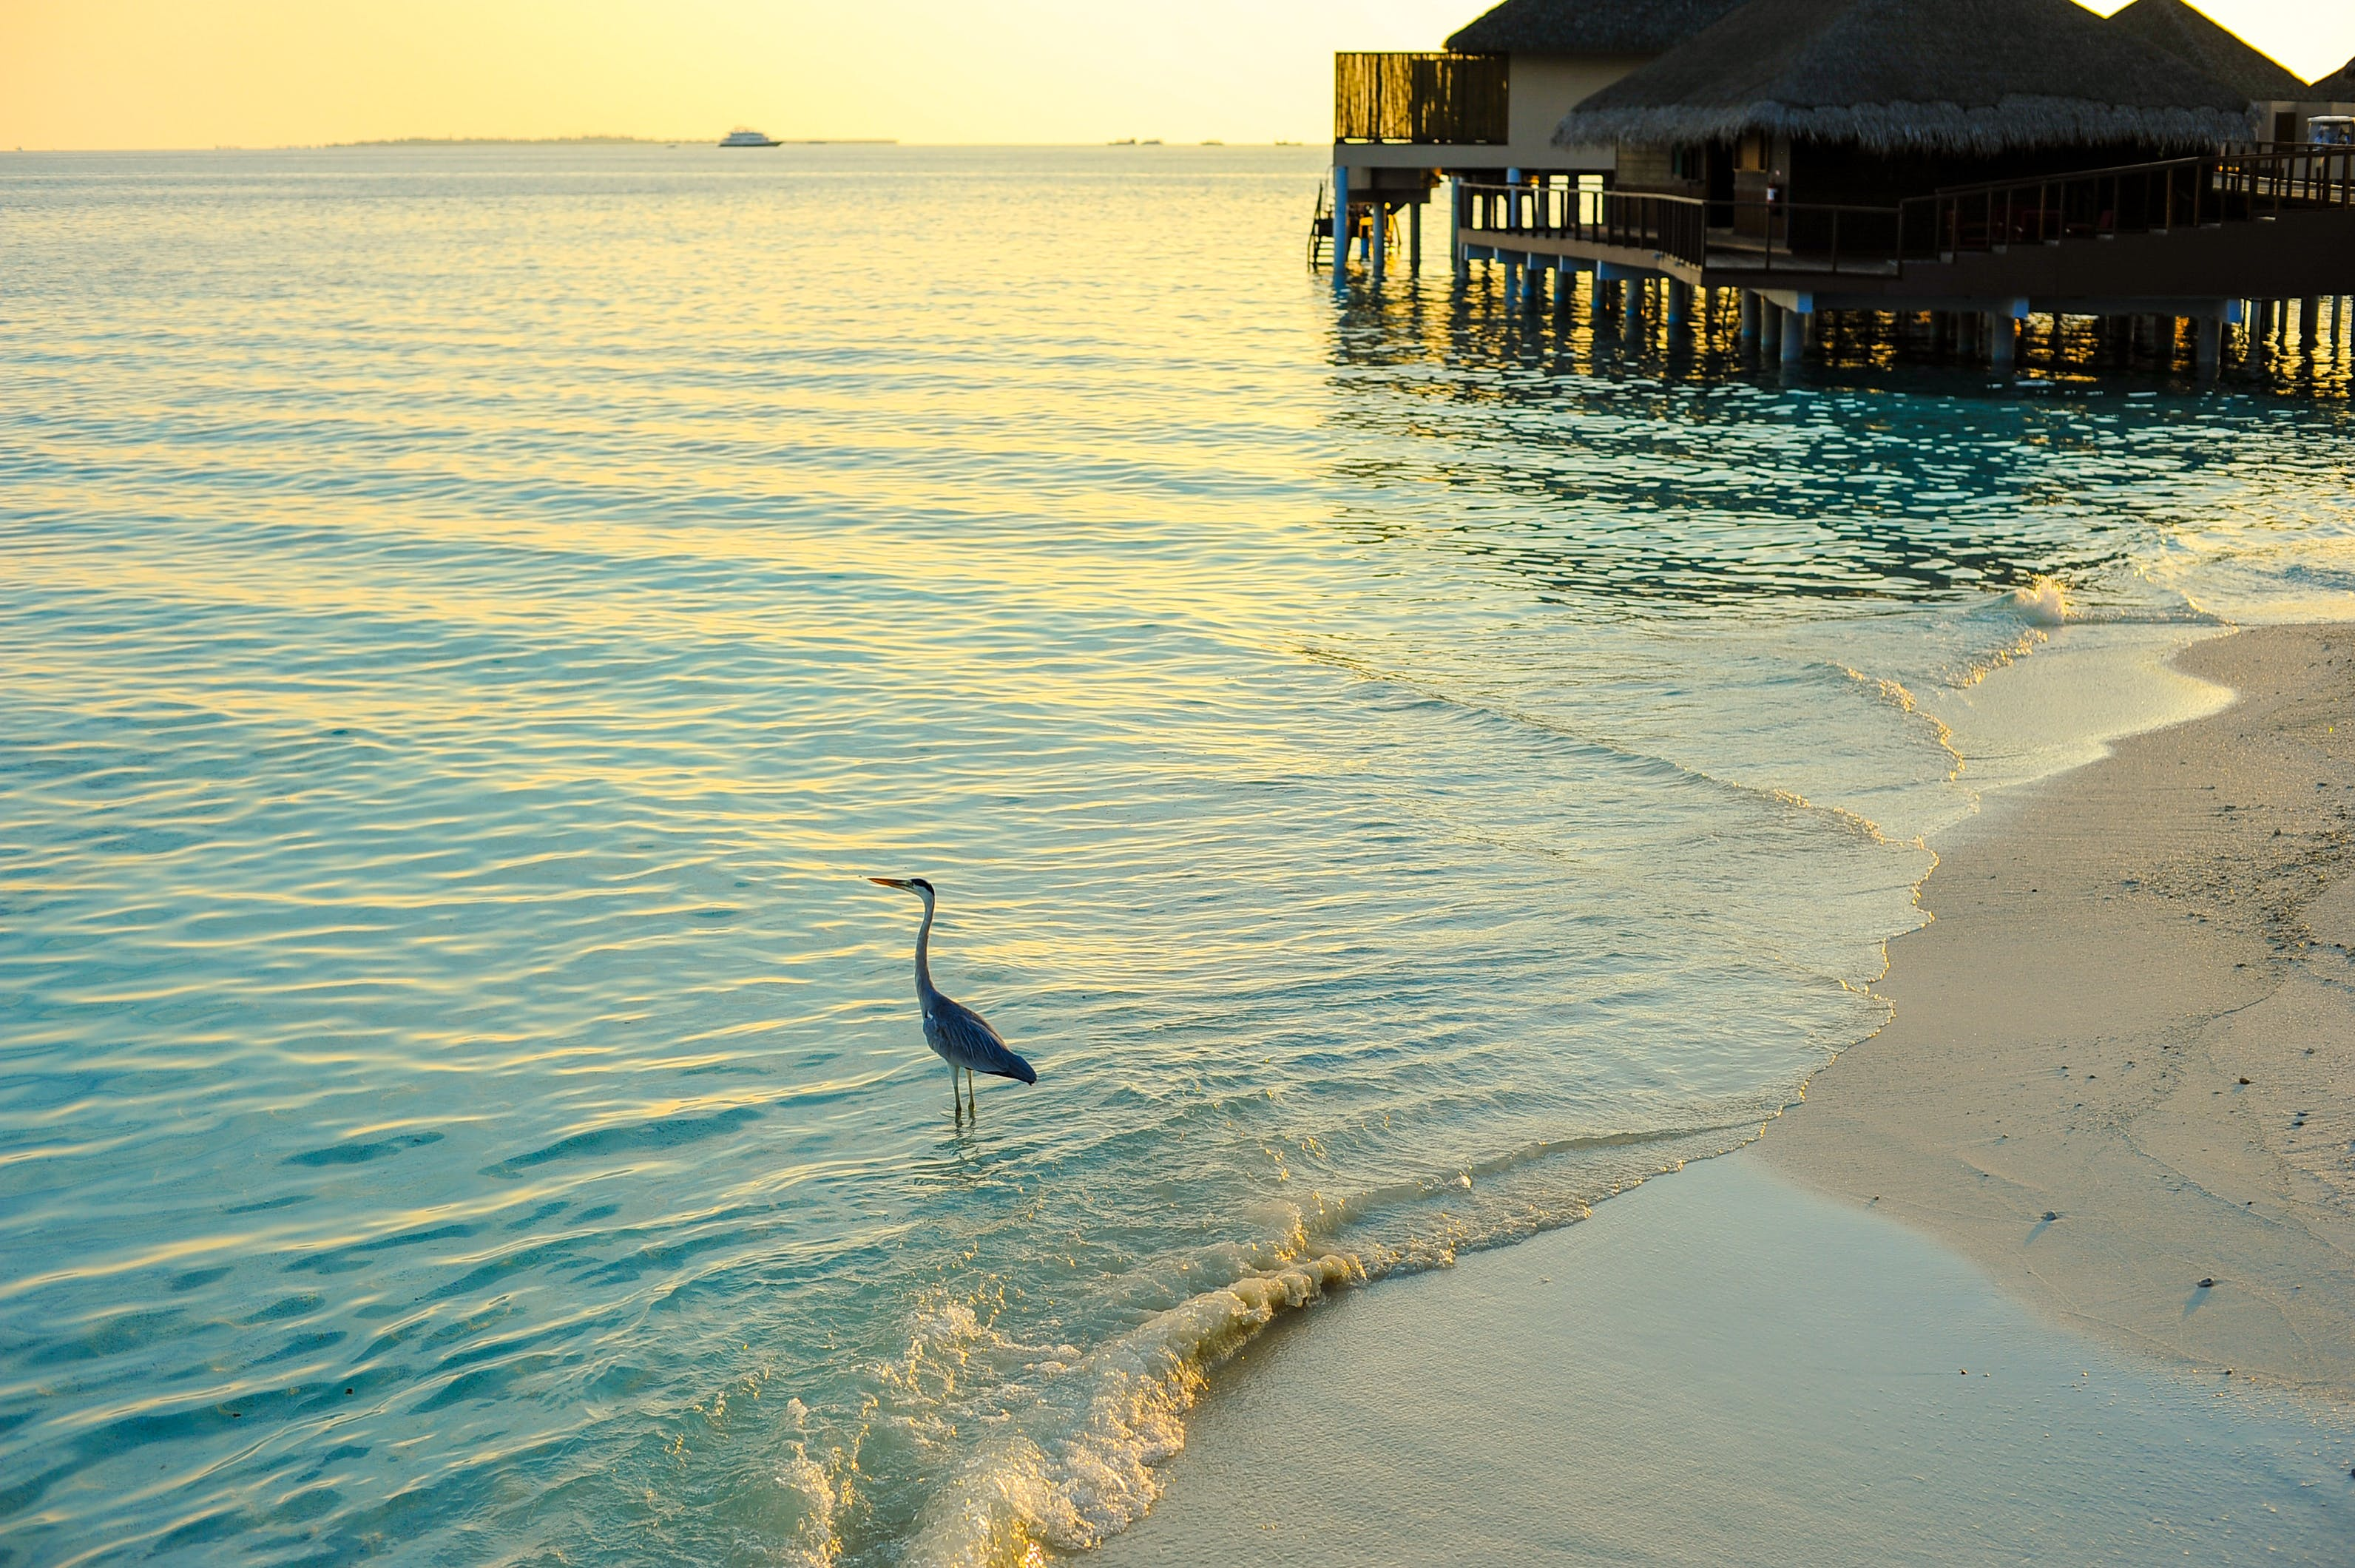 Gray Heron Standing on Large Clear Body of Water